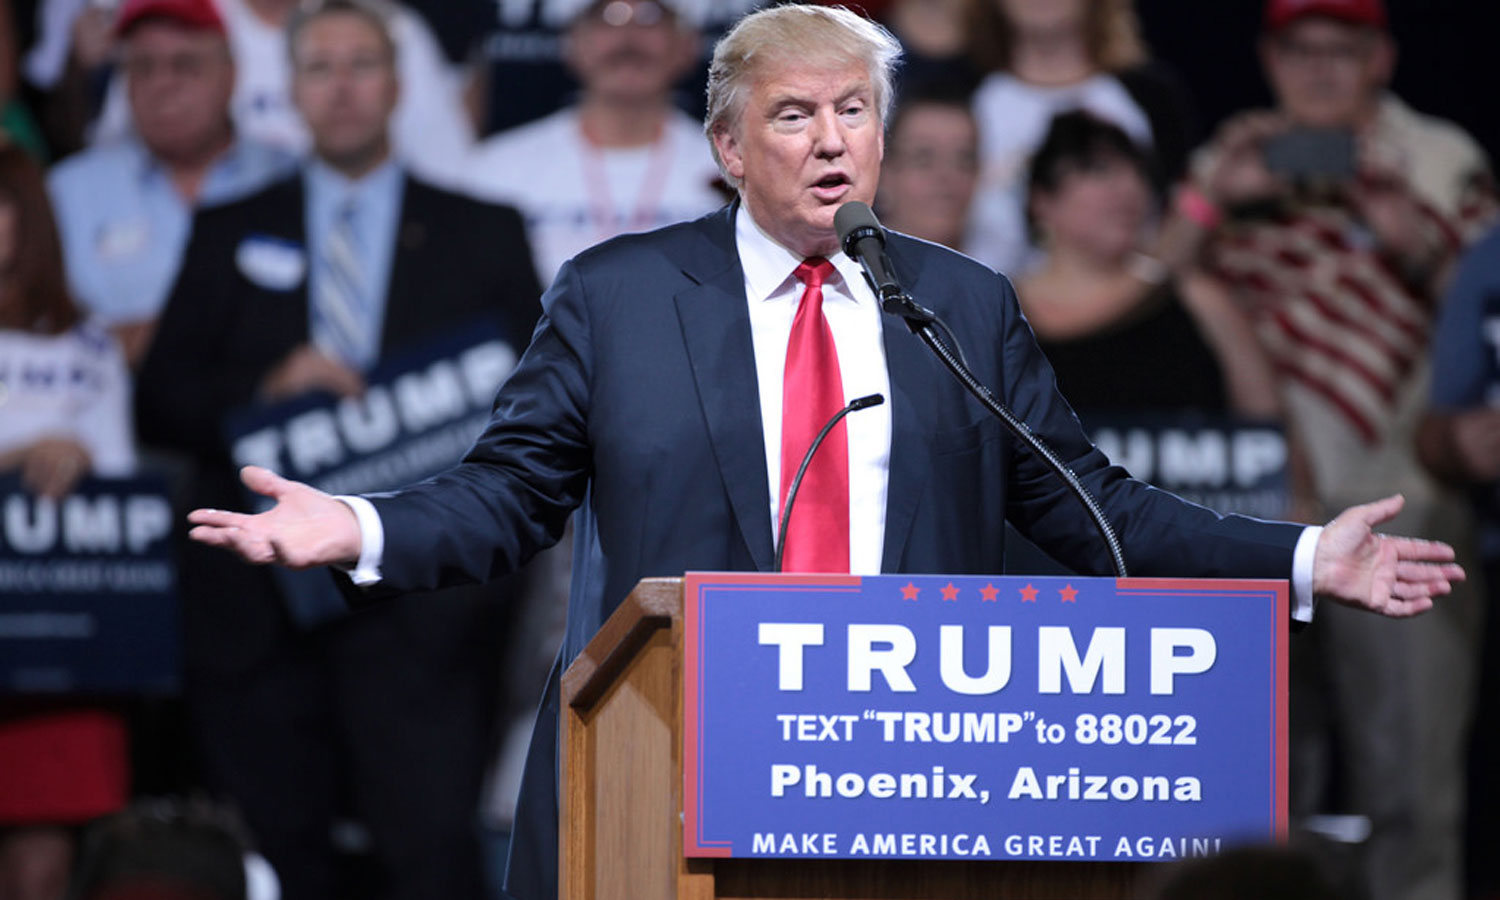 Donald Trump speaks at a rally in Arizona